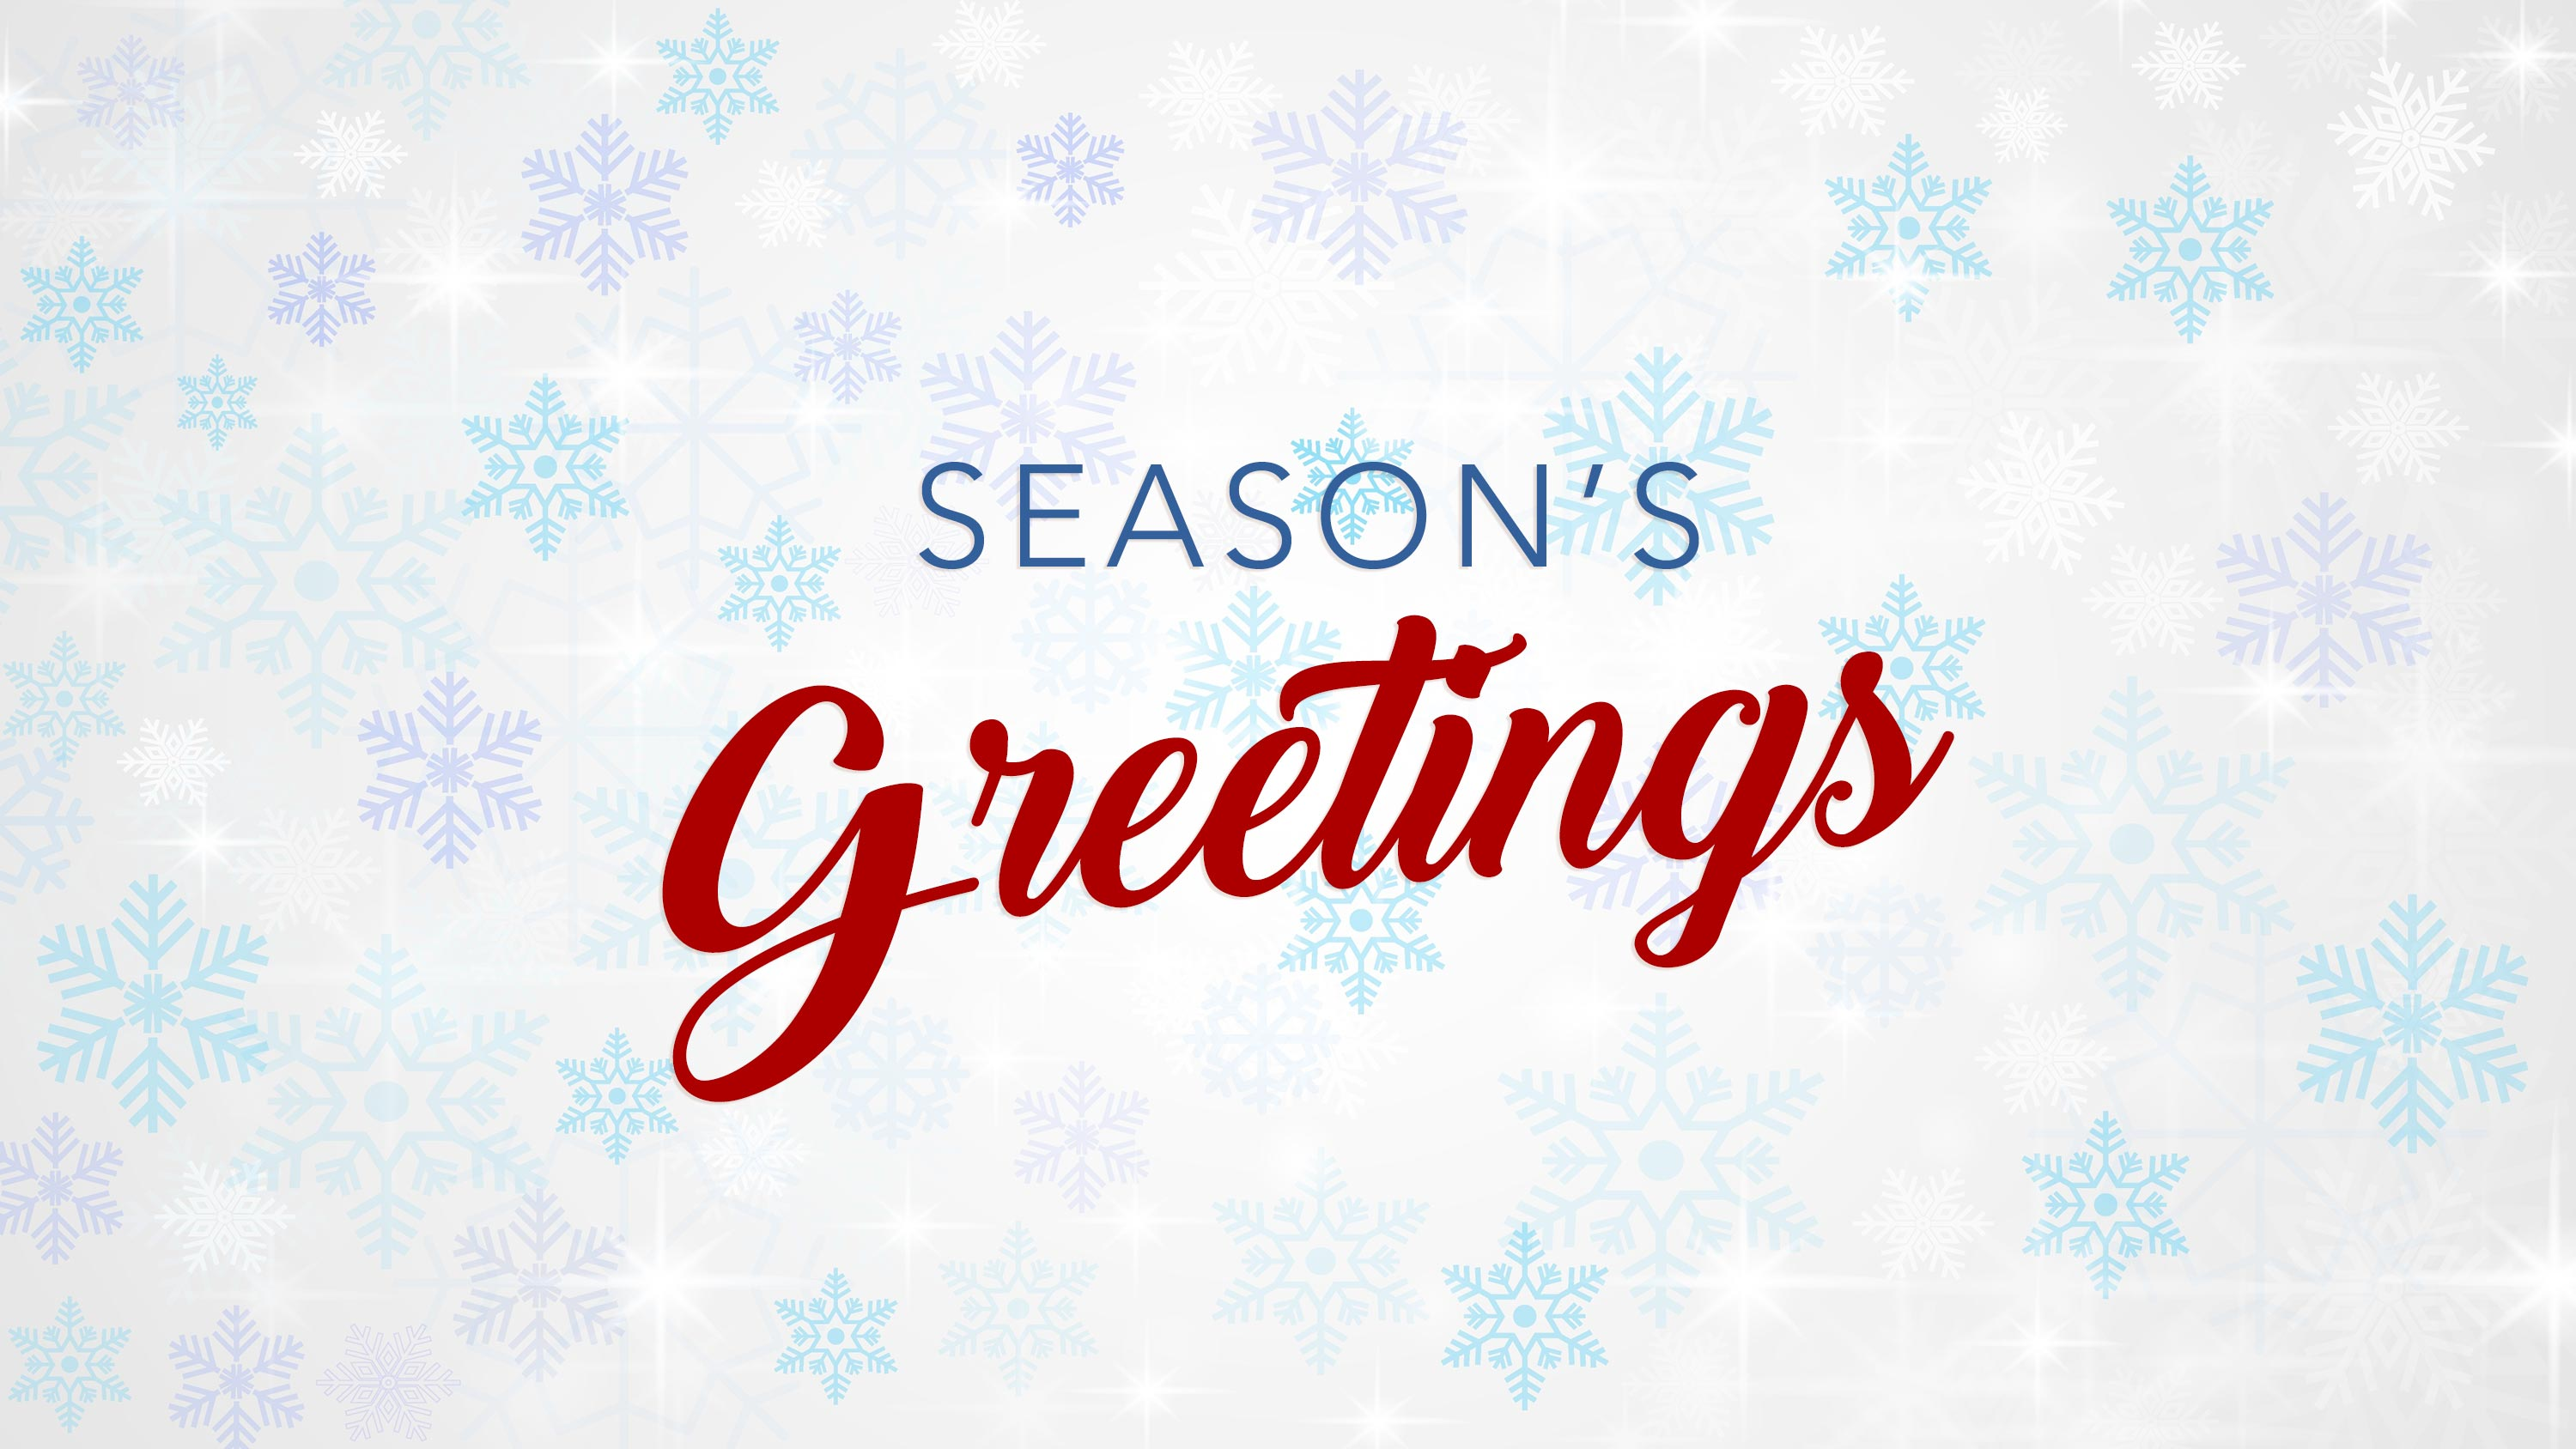 15 Seasons Greetings Cards Stock Images HD Wallpapers Winter 3000x1688